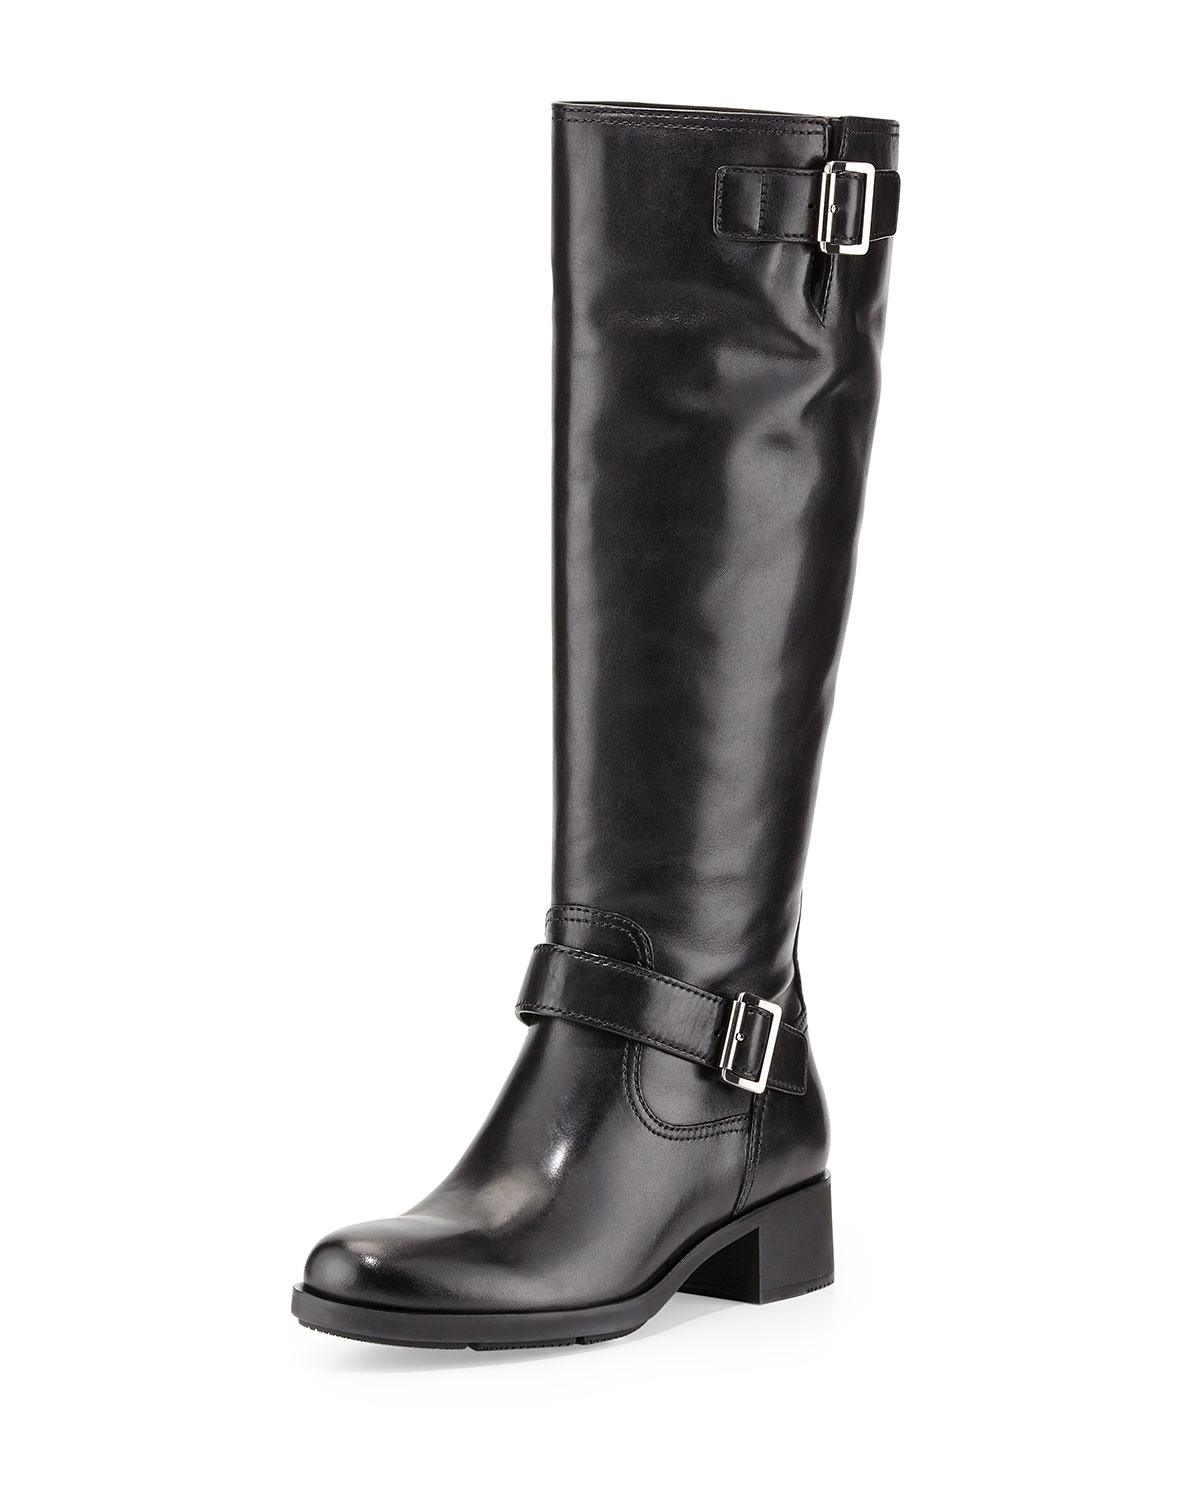 prada tan leather handbag - Prada linea rossa Leather Moto Knee Boot in Black | Lyst